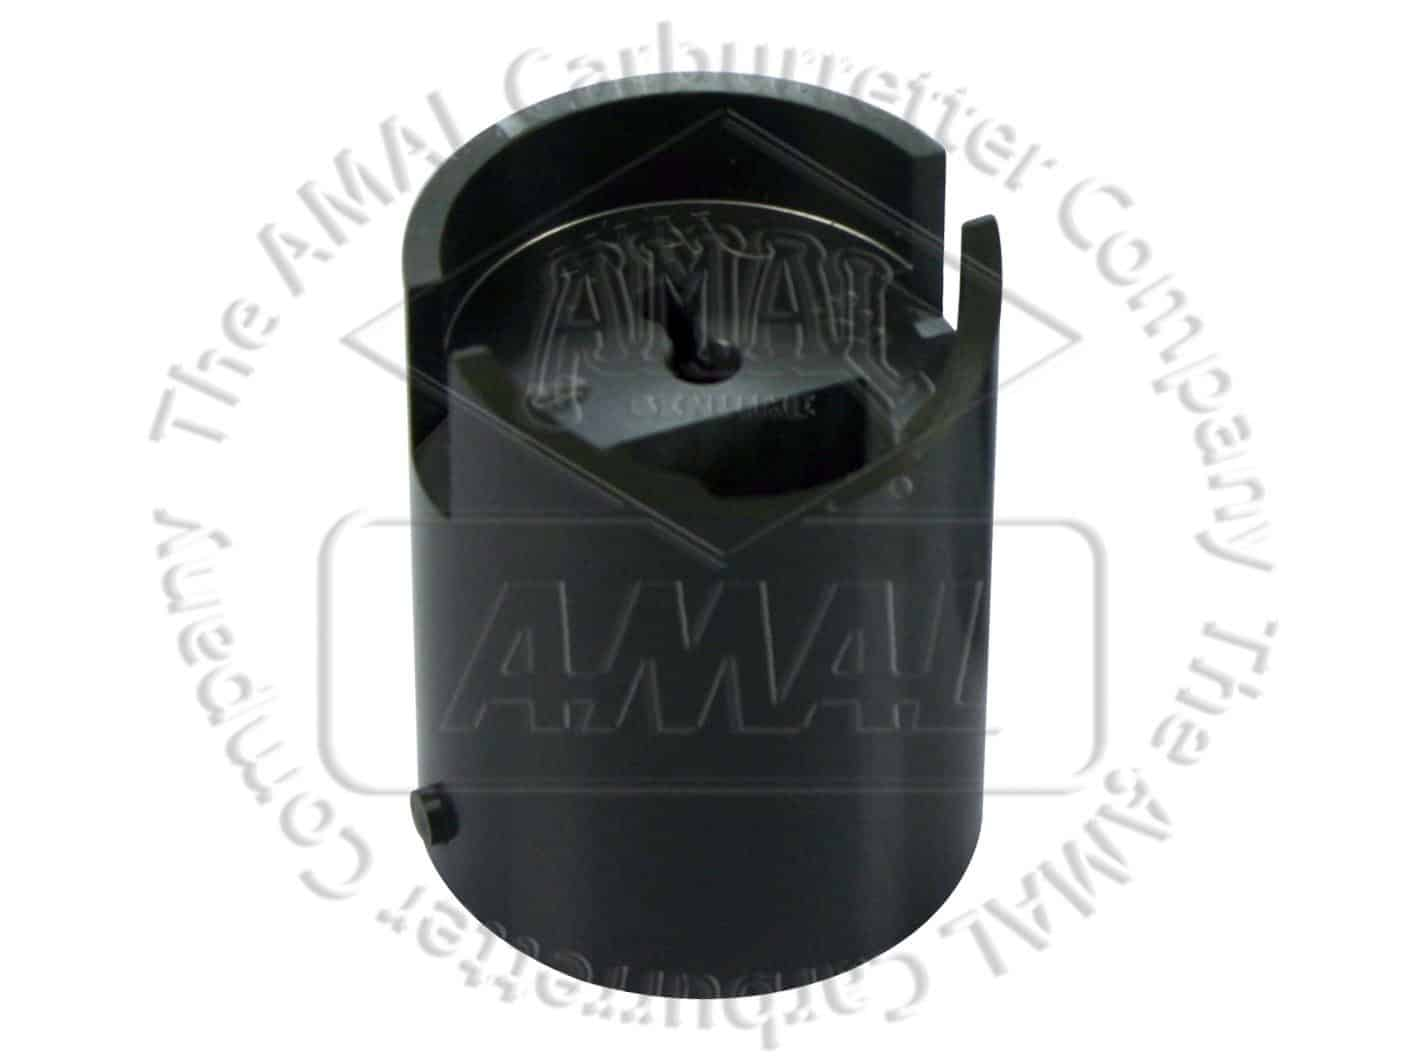 Amal 900 Series carburettor throttle slide - Classic Bike Spares